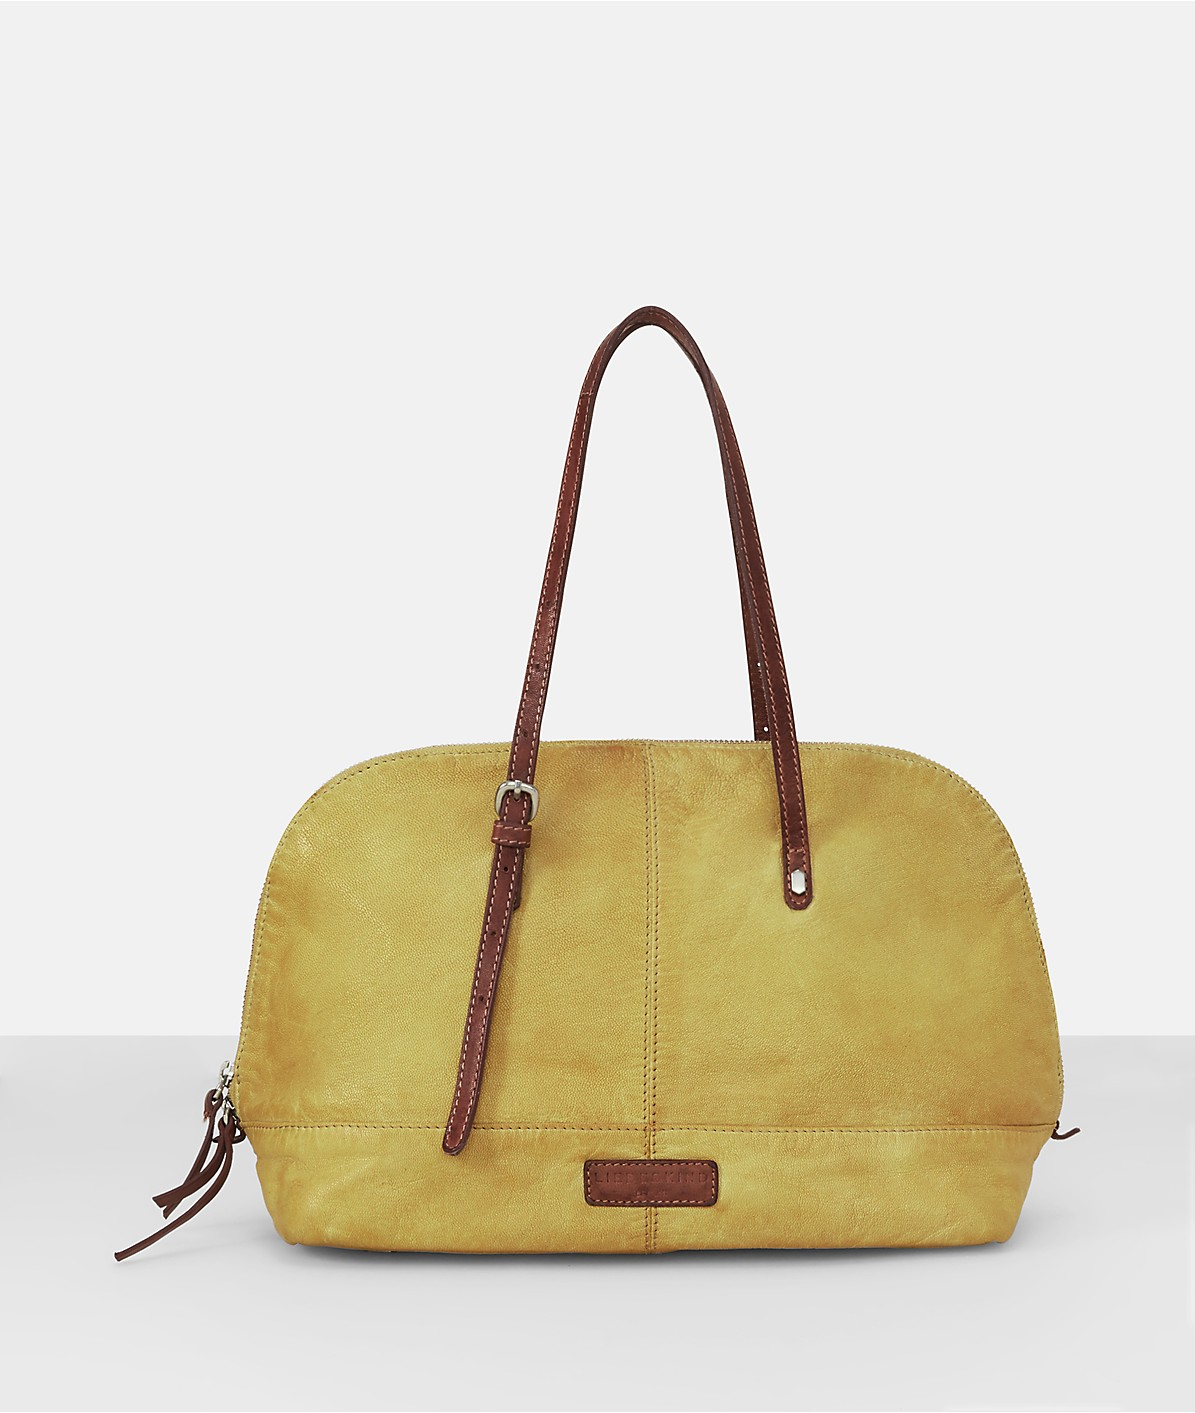 Gimbi handbag from liebeskind